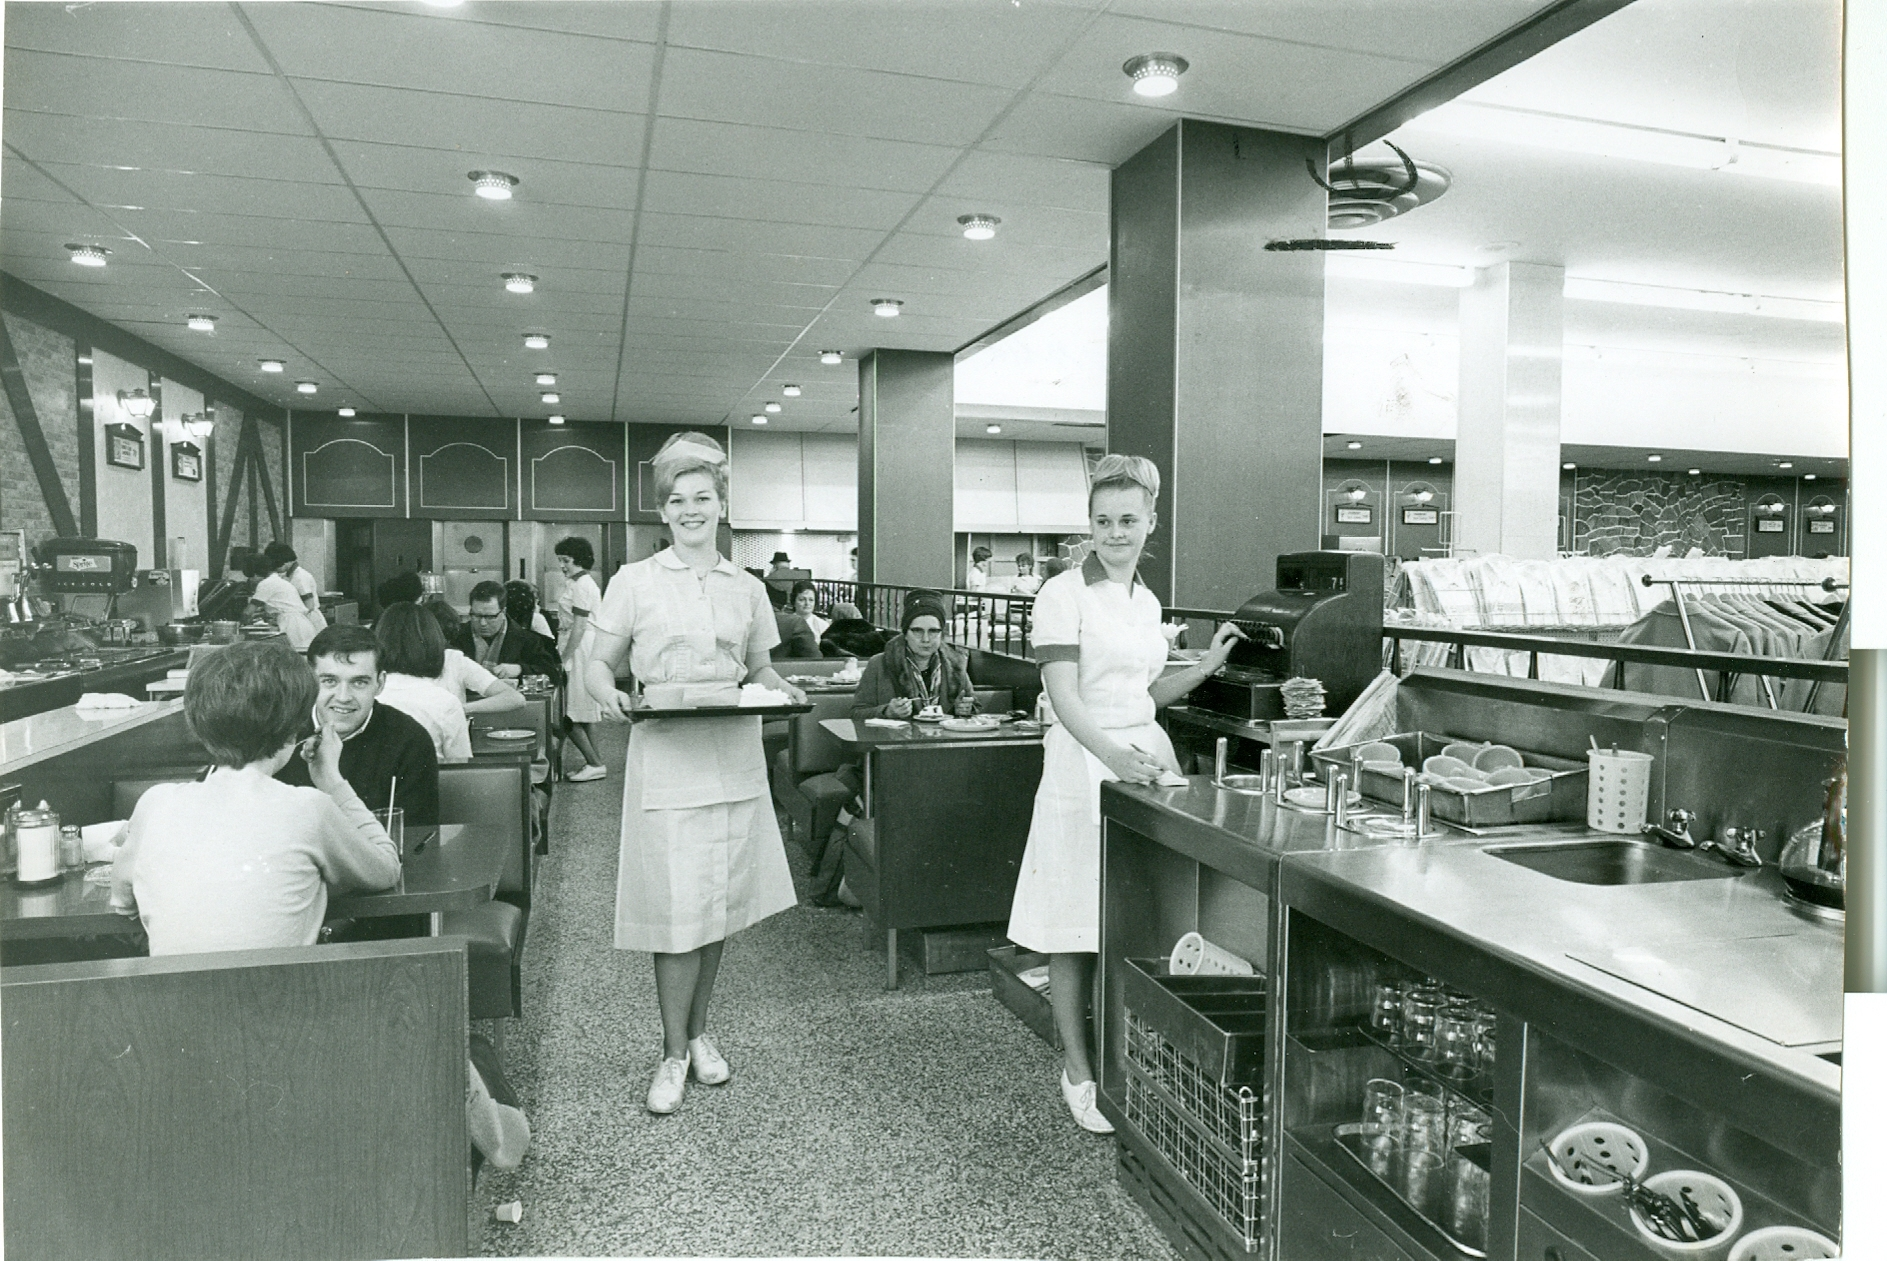 FLASHBACK: Shopping | Stories from the Hamilton Spectator